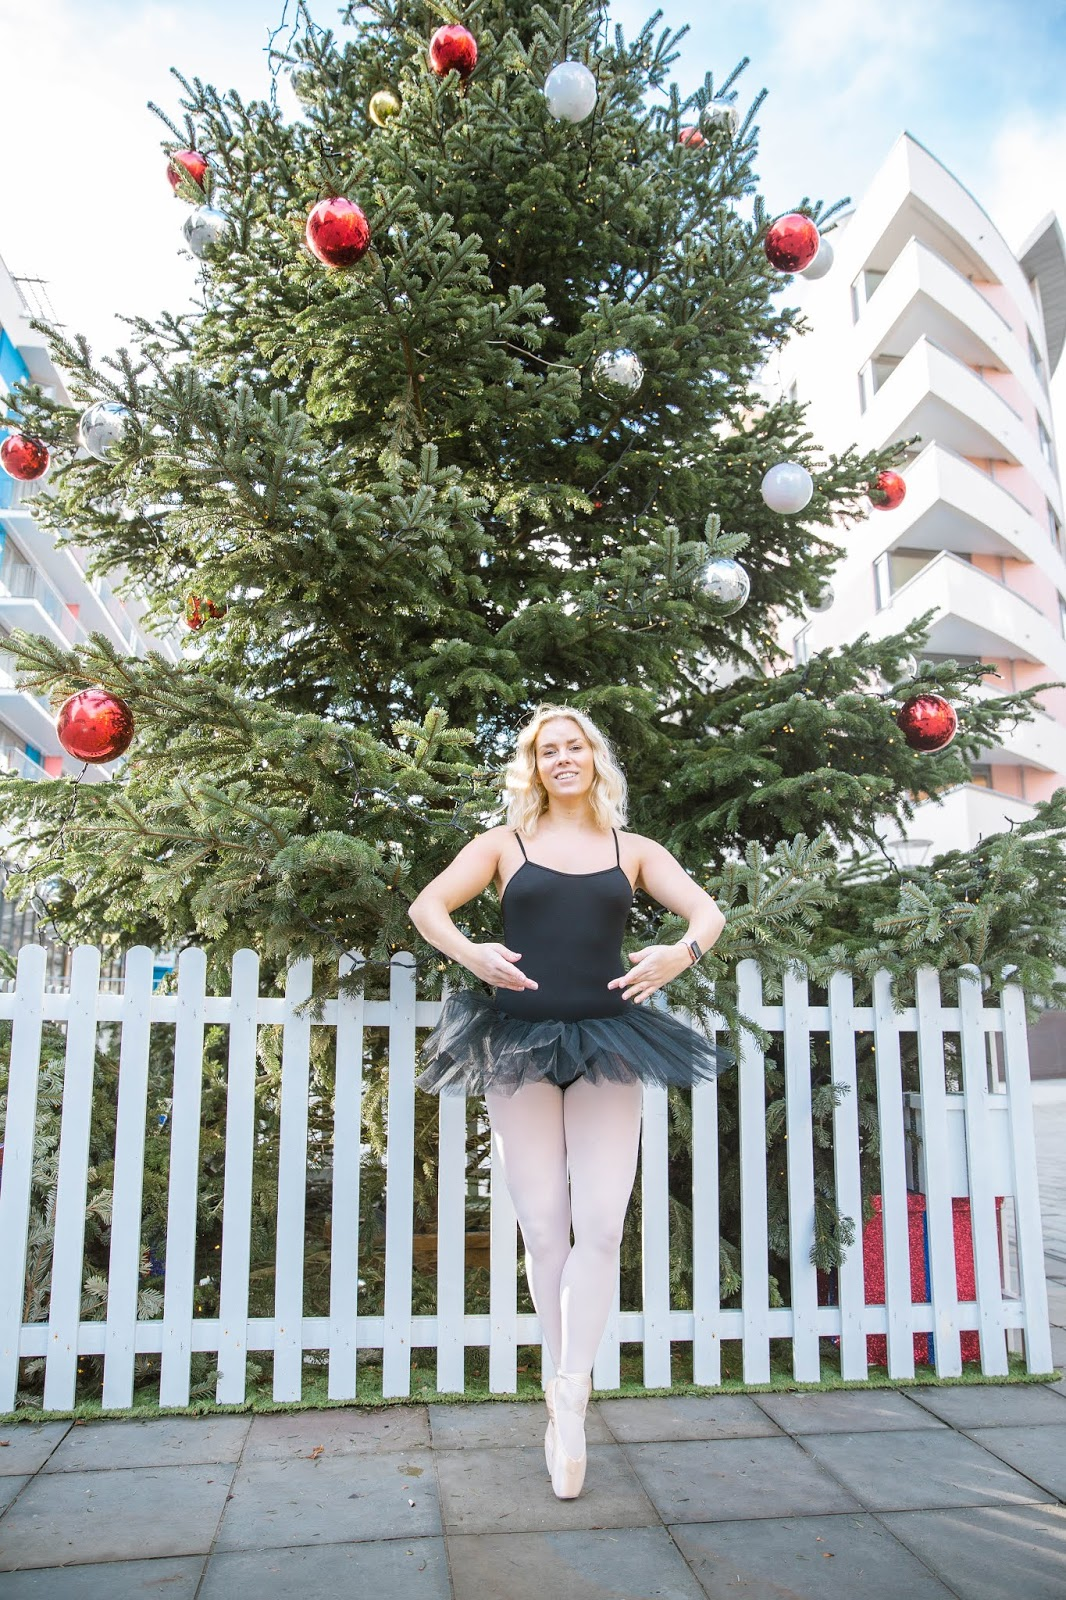 Rachel Emily en pointe in a black tutu in front of a christmas tree ballet - Rachel Emily Blog